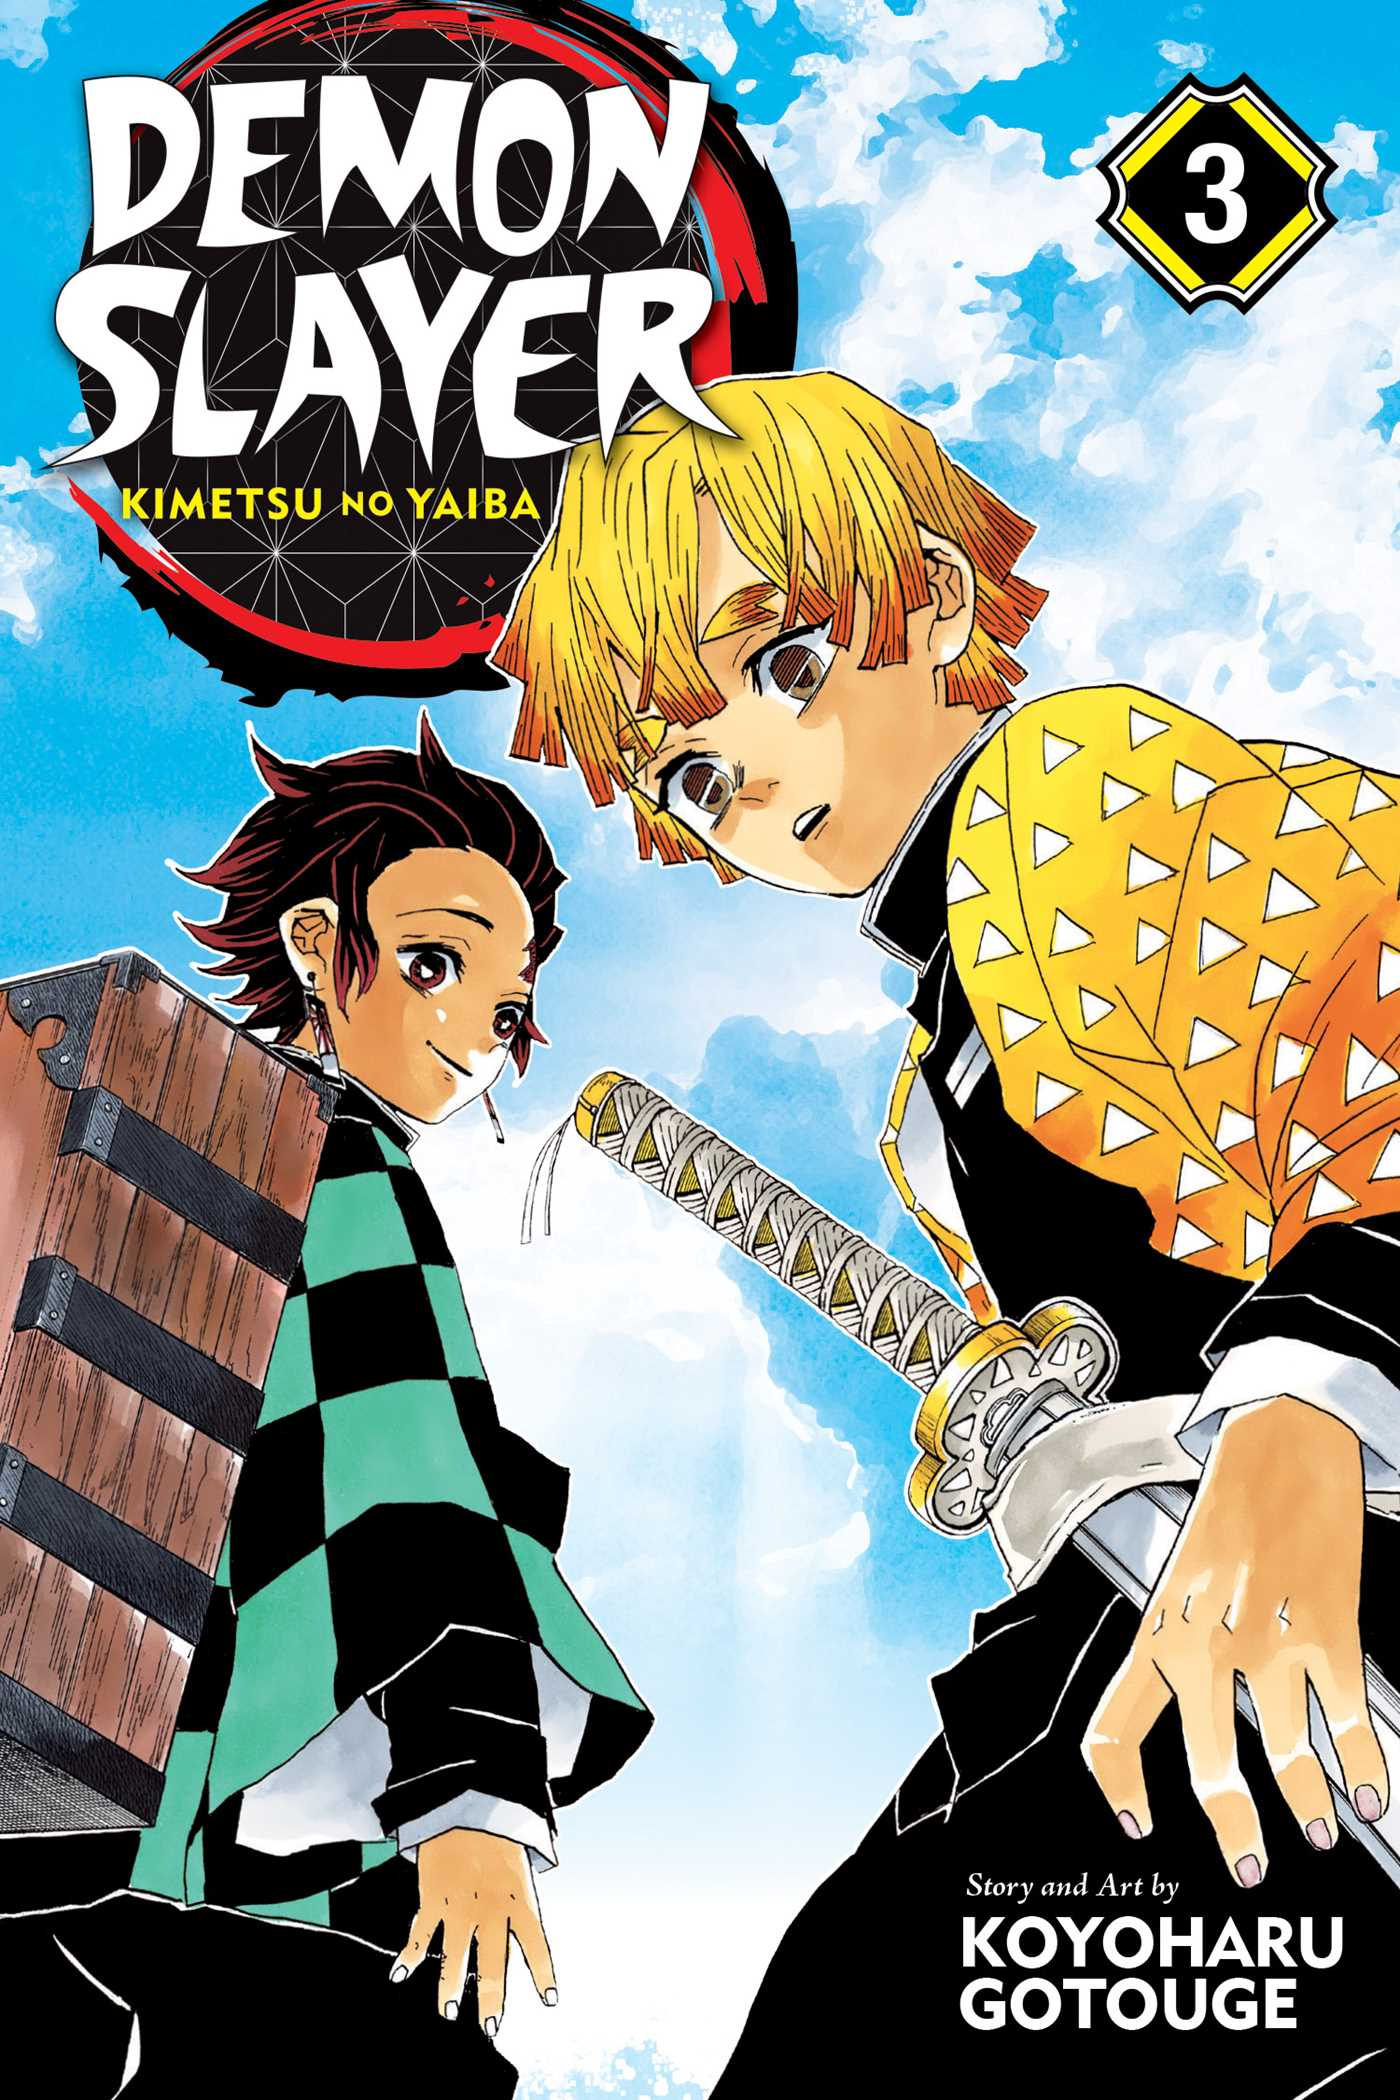 Demon slayer kimetsu no yaiba vol 3 9781974700547 hr